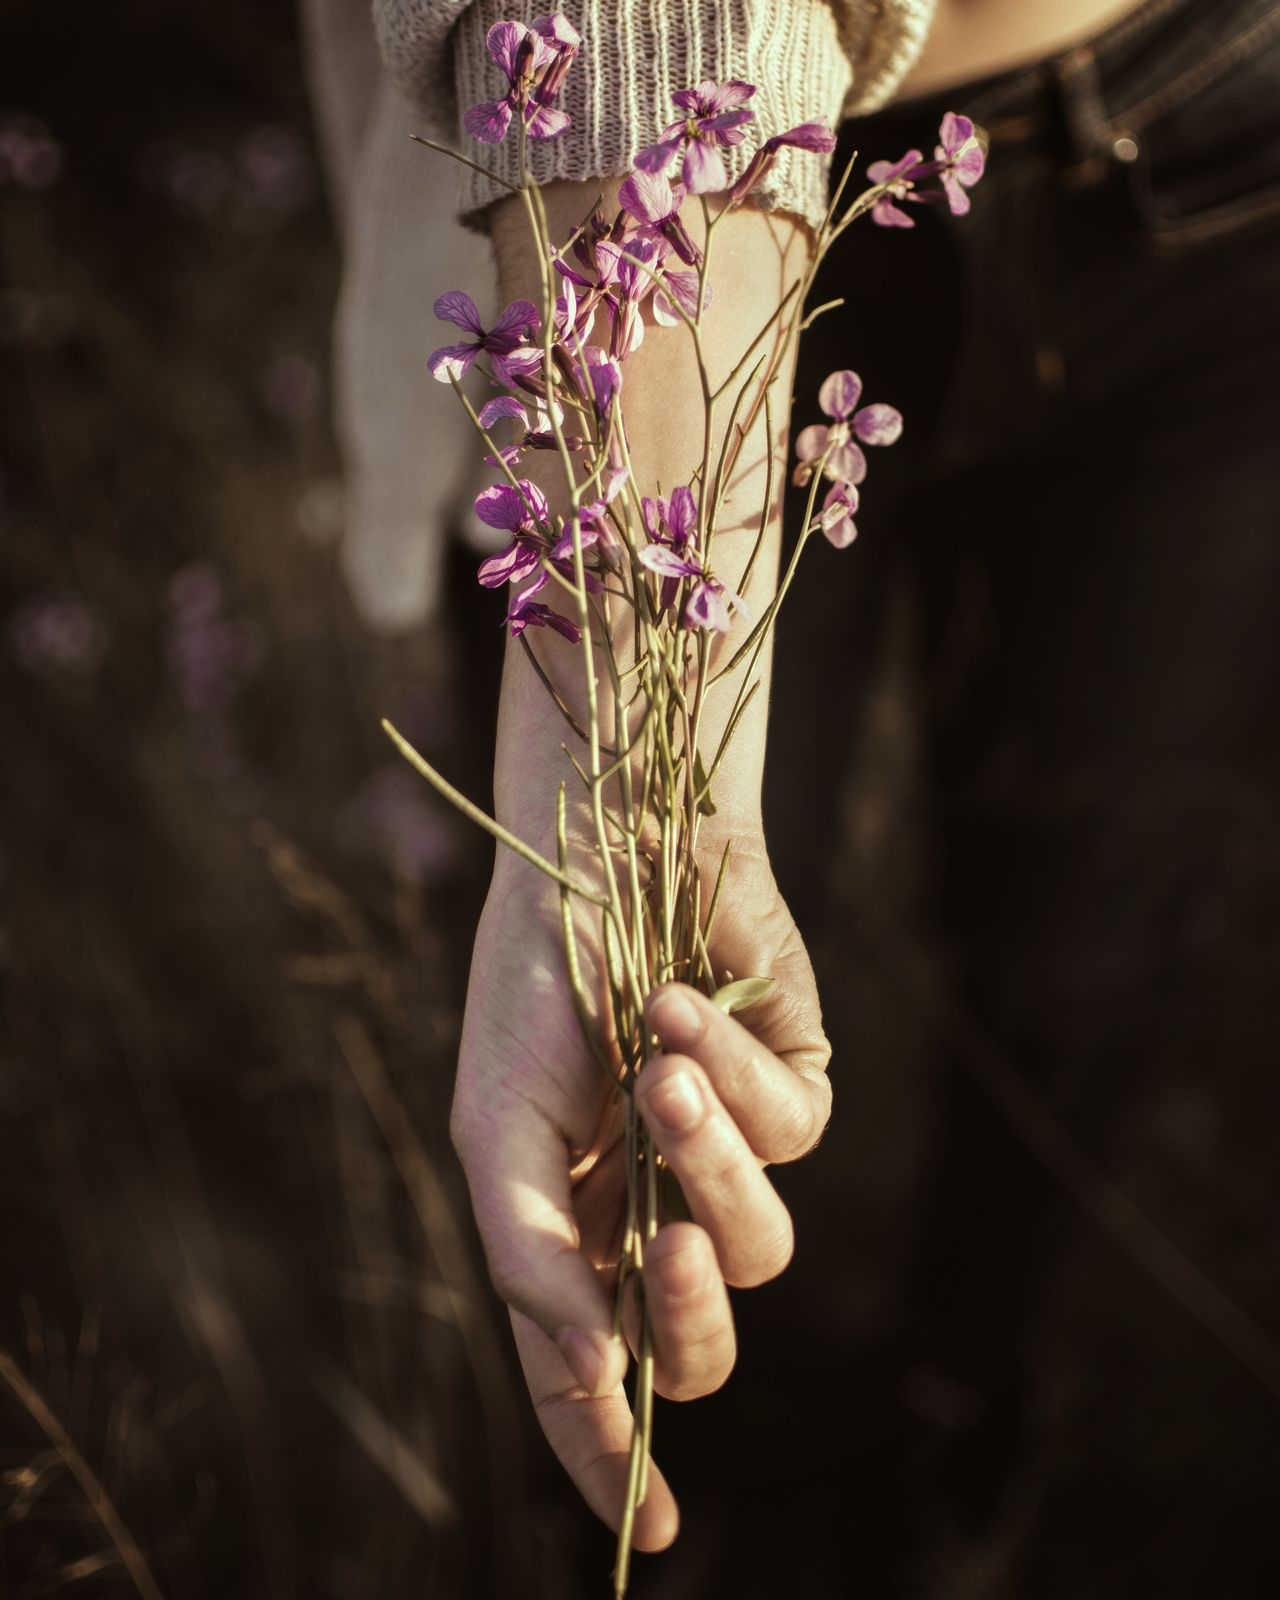 Own heroes EyeEm Selects flower human hand blossom human body part Plant Nature close-up Tree Growth fragility beauty branch Adult only women beauty in Nature people day one person outdoors flower head EyeEmNewHere